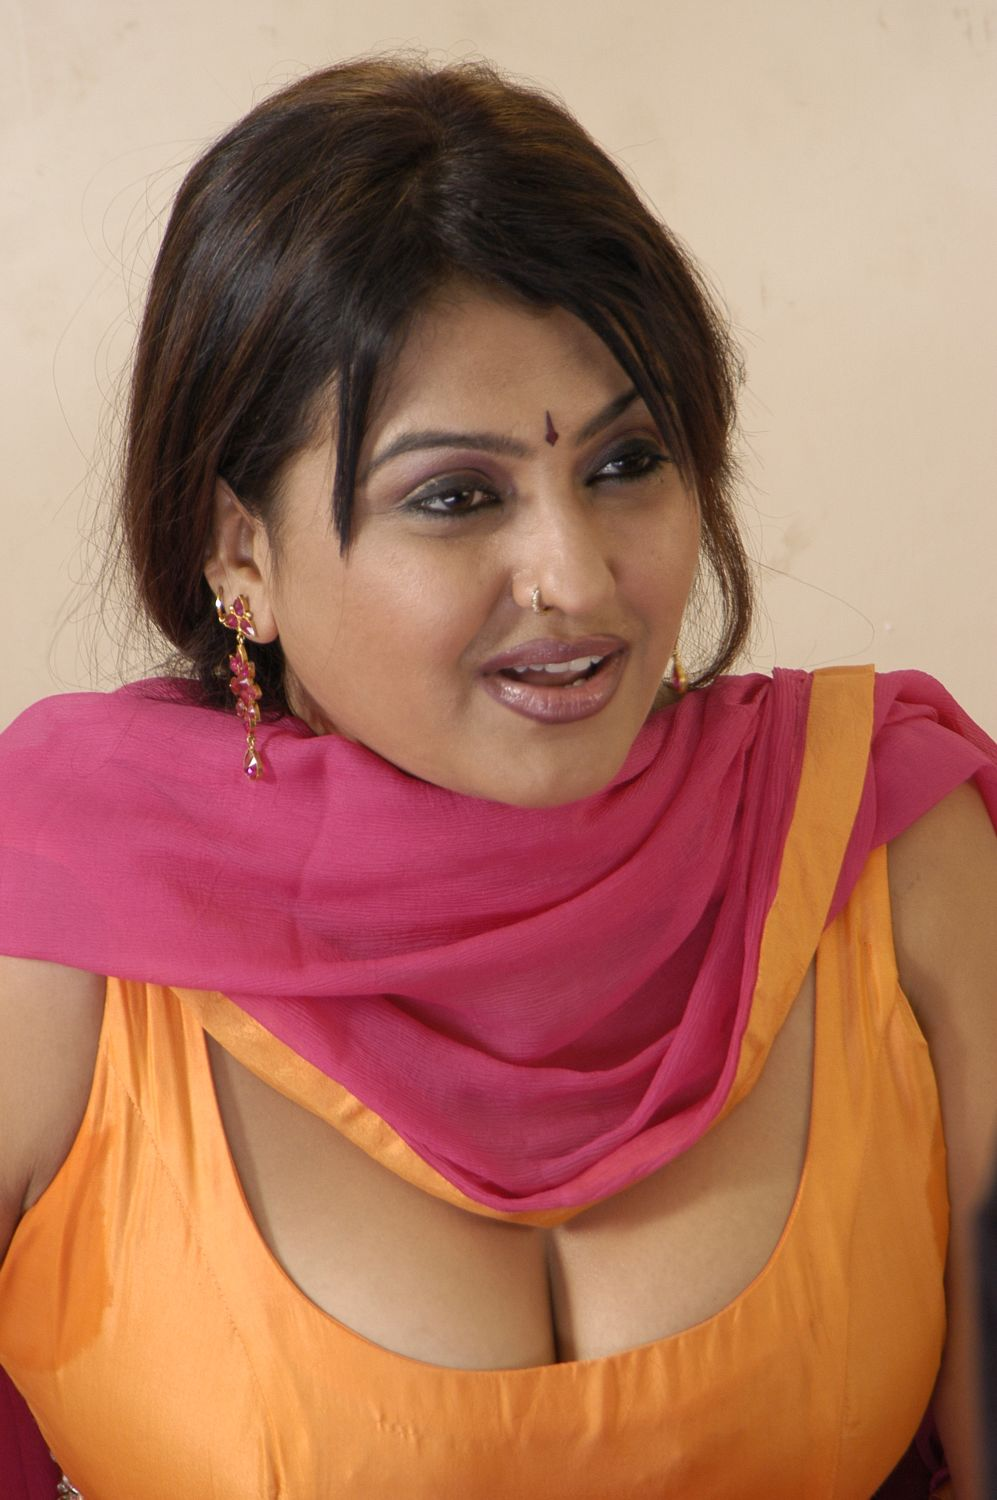 Ann hot aunty photos